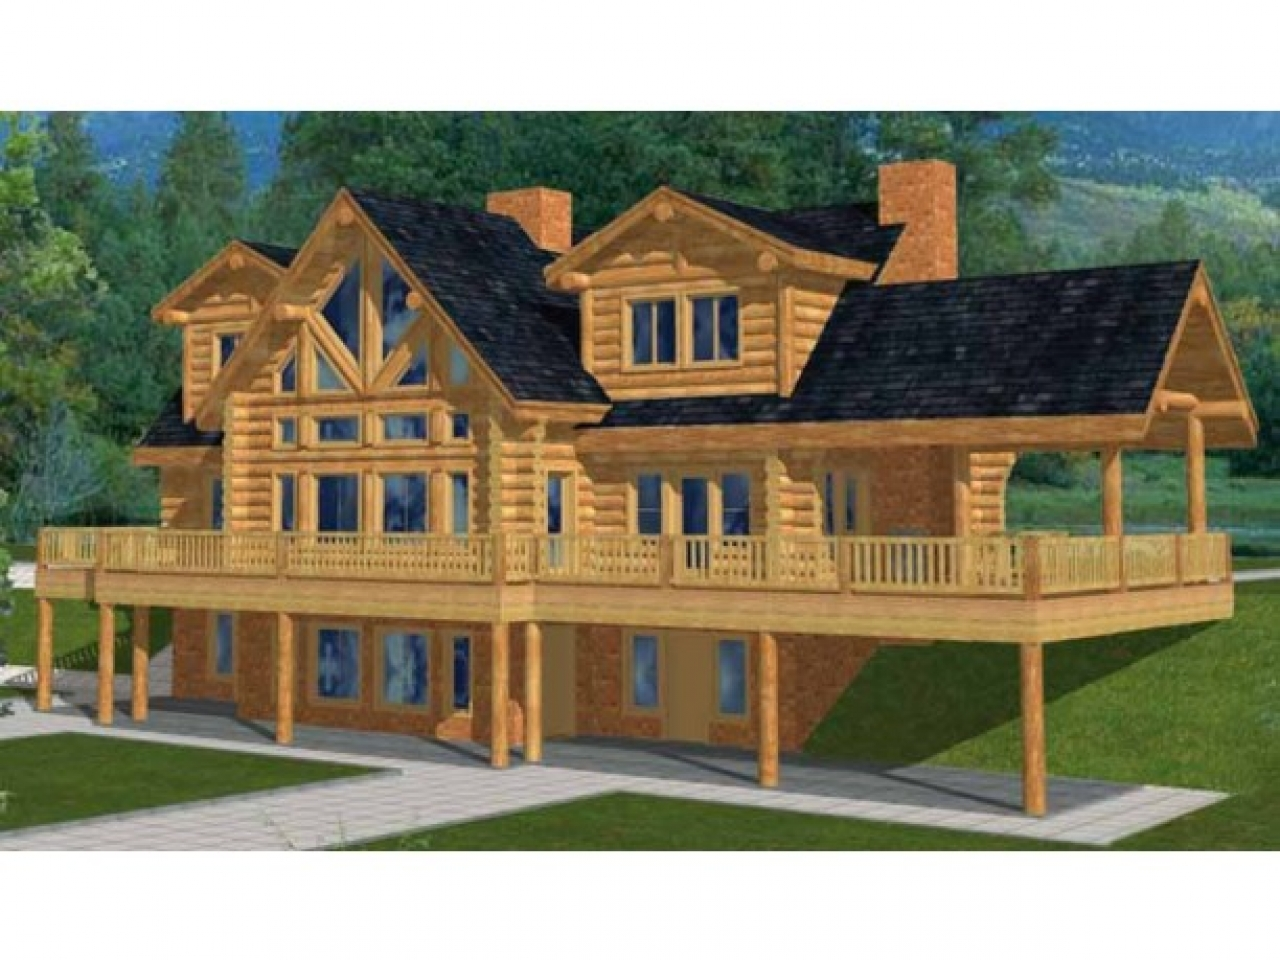 Two story log cabin house plans inexpensive modular homes for 2 bedroom log cabin plans